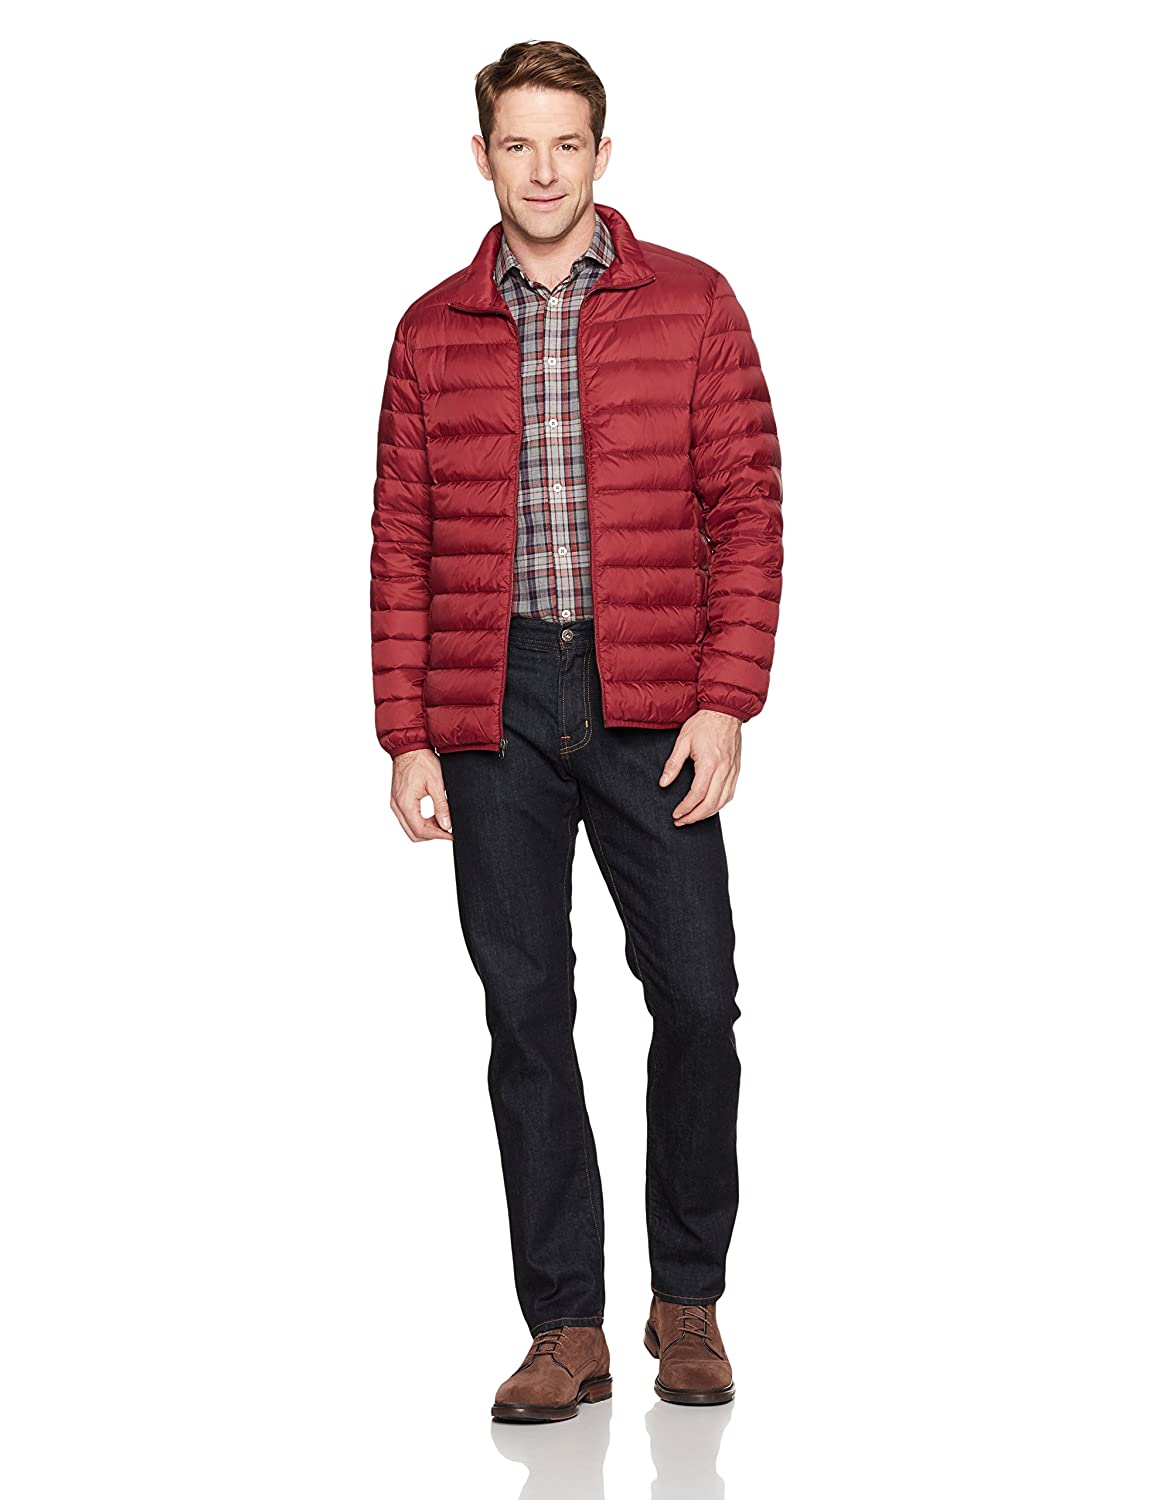 Essentials Mens Lightweight Water-Resistant Packable Down Jacket Brick Red Large